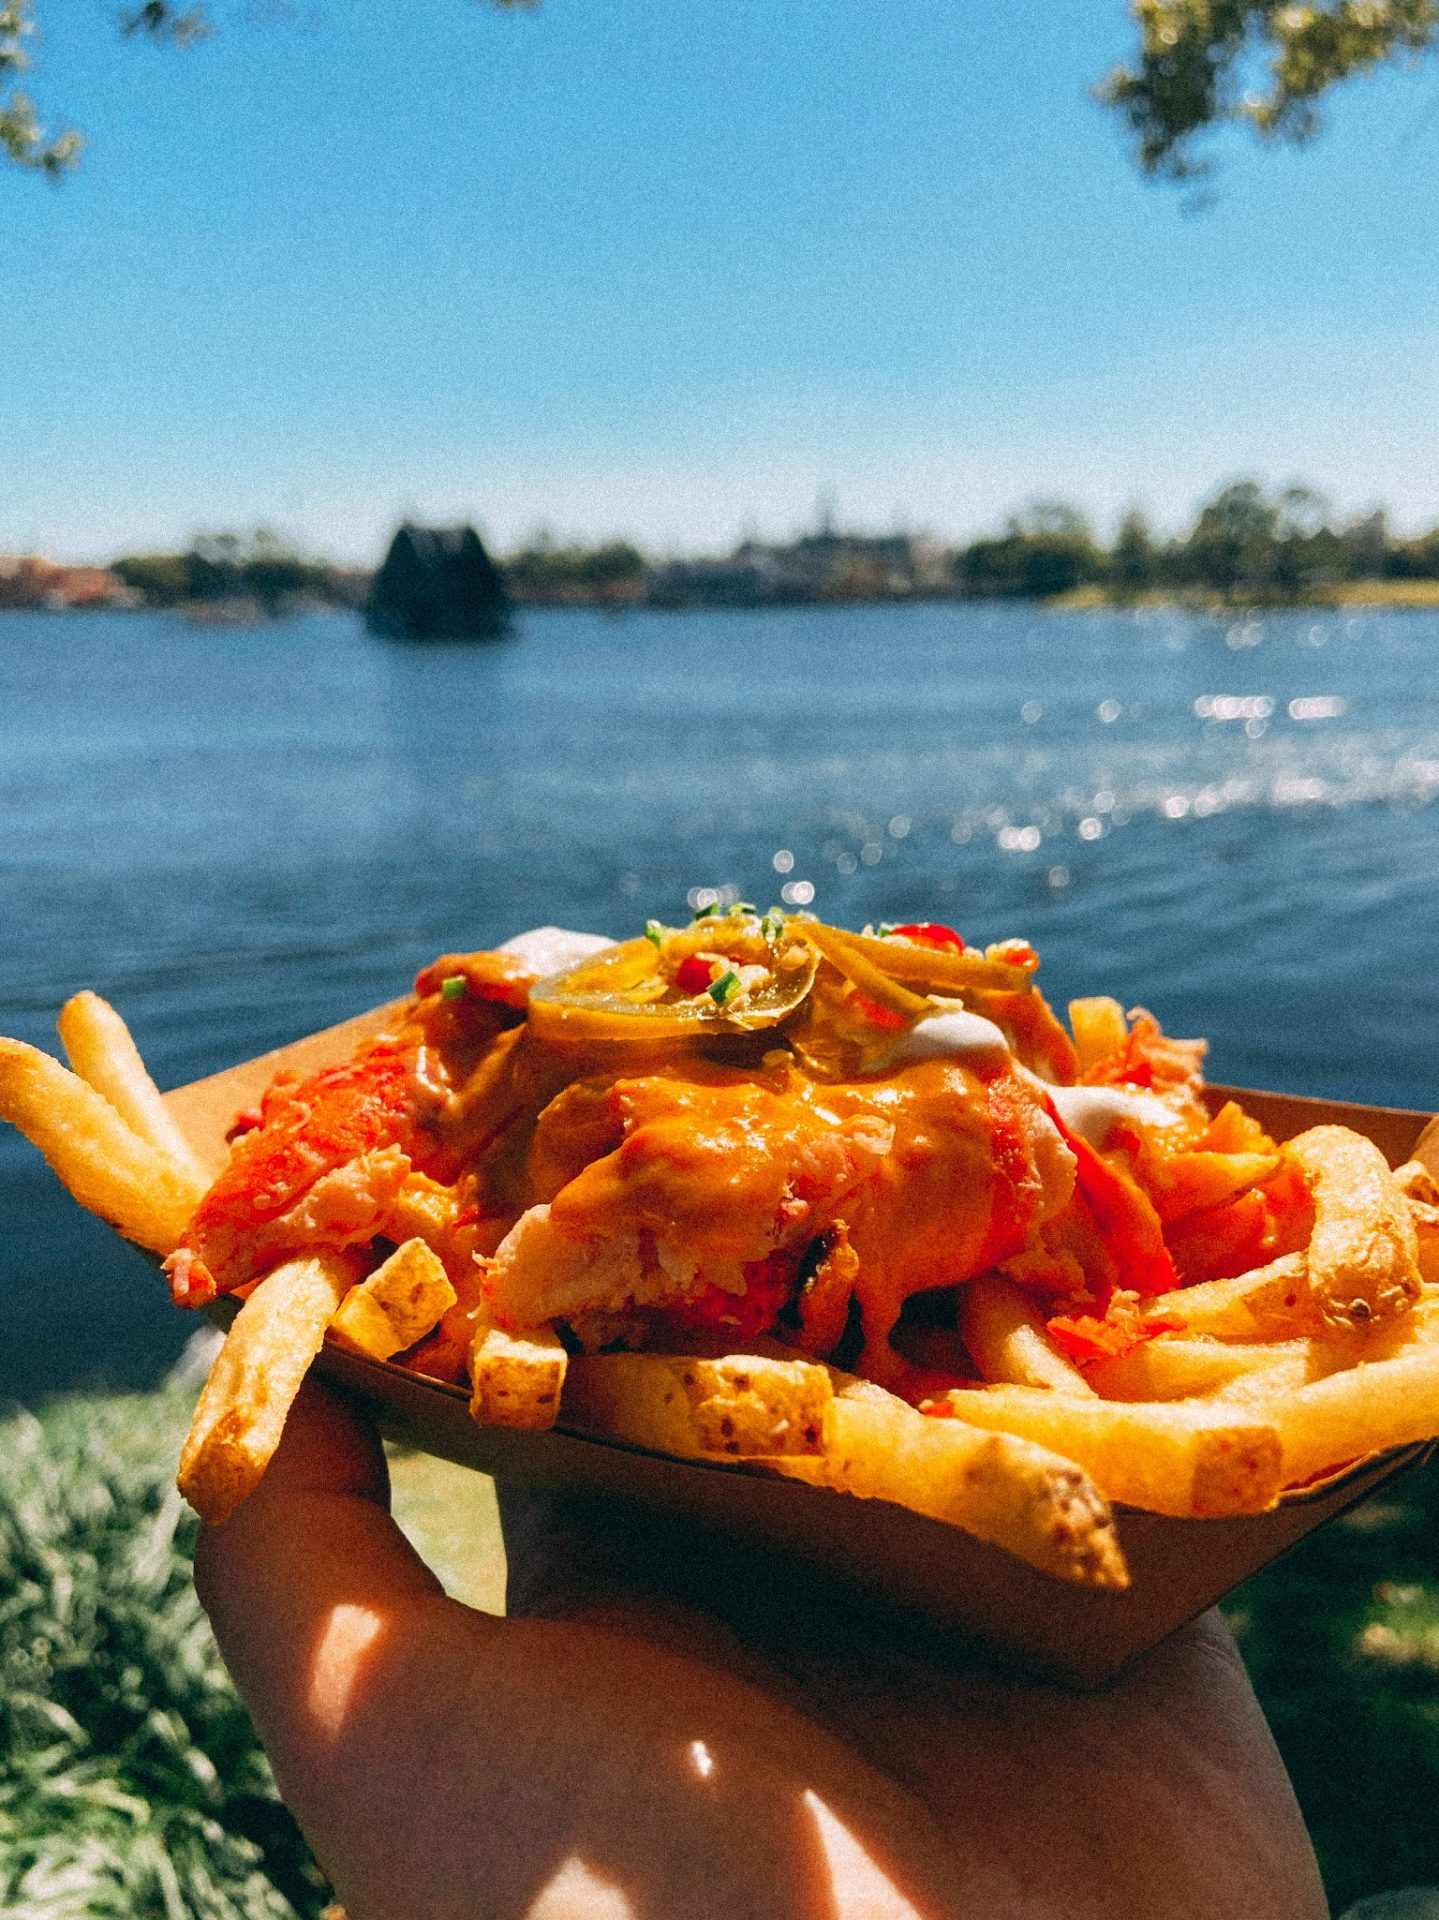 french fries poutine style with cheese and lobster on top with the background of the lake at Disney World Epcot in Orlando Florida